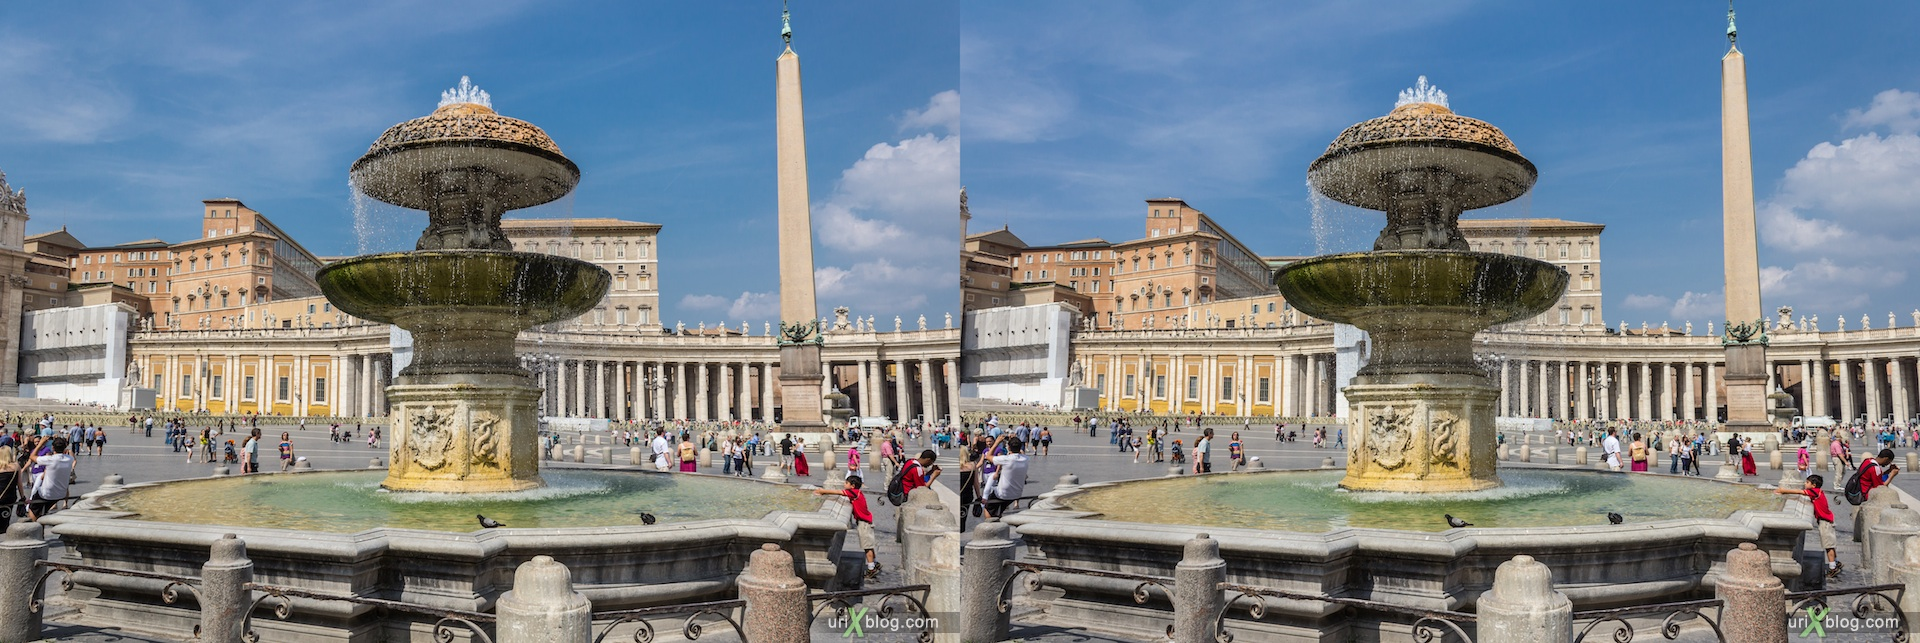 2012, southern fountain, Saint Peter's Basilica, square, Vatican, Rome, Italy, 3D, stereo pair, cross-eyed, crossview, cross view stereo pair